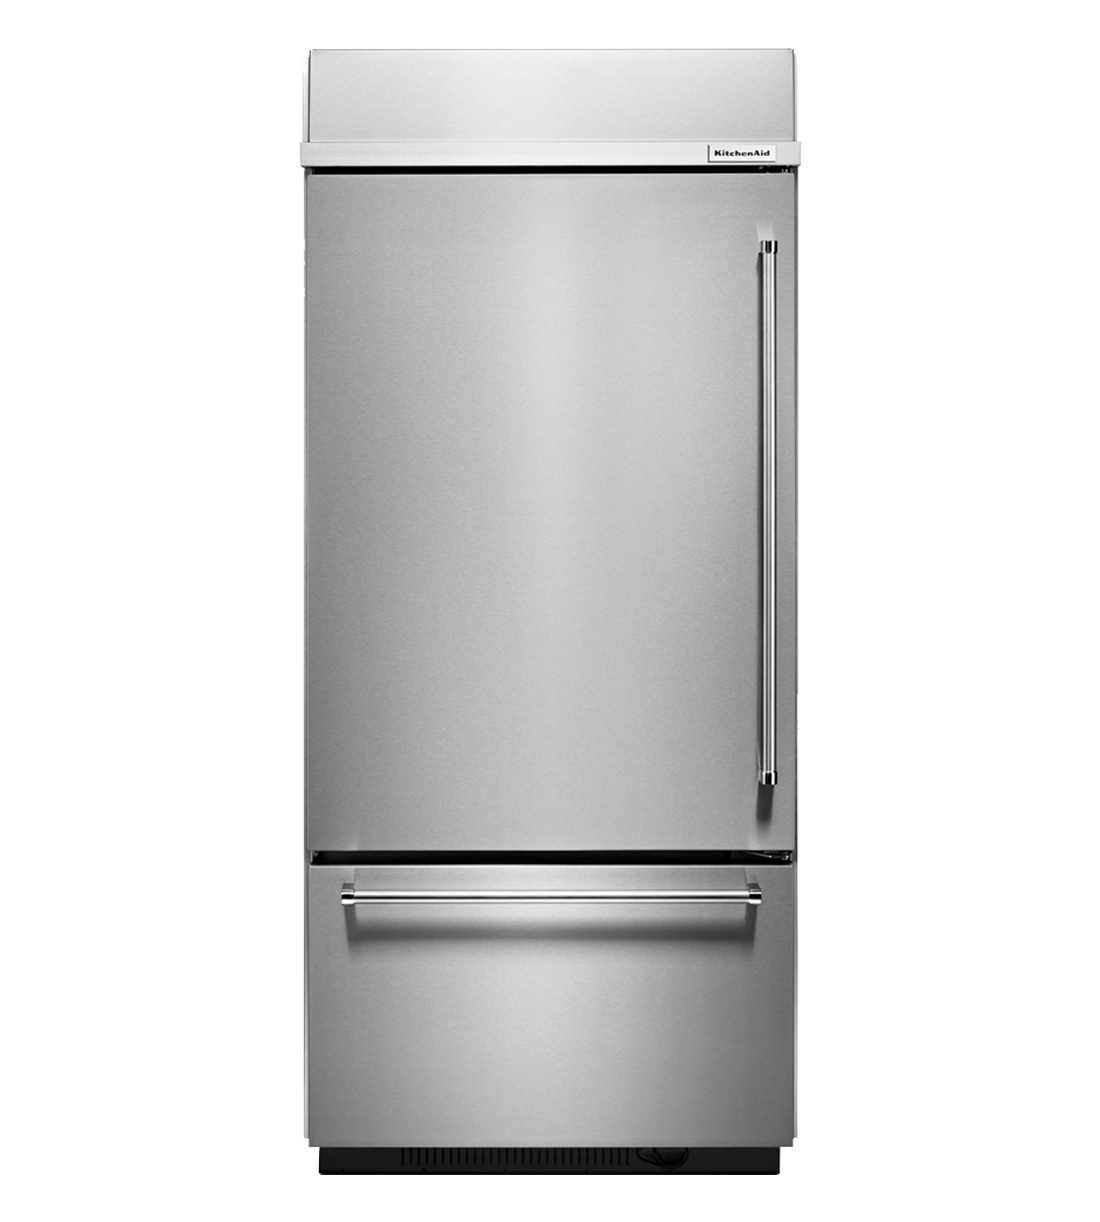 Kitchen Aid Refrigerator in Stainless Steel color showcased by Corbeil Electro Store